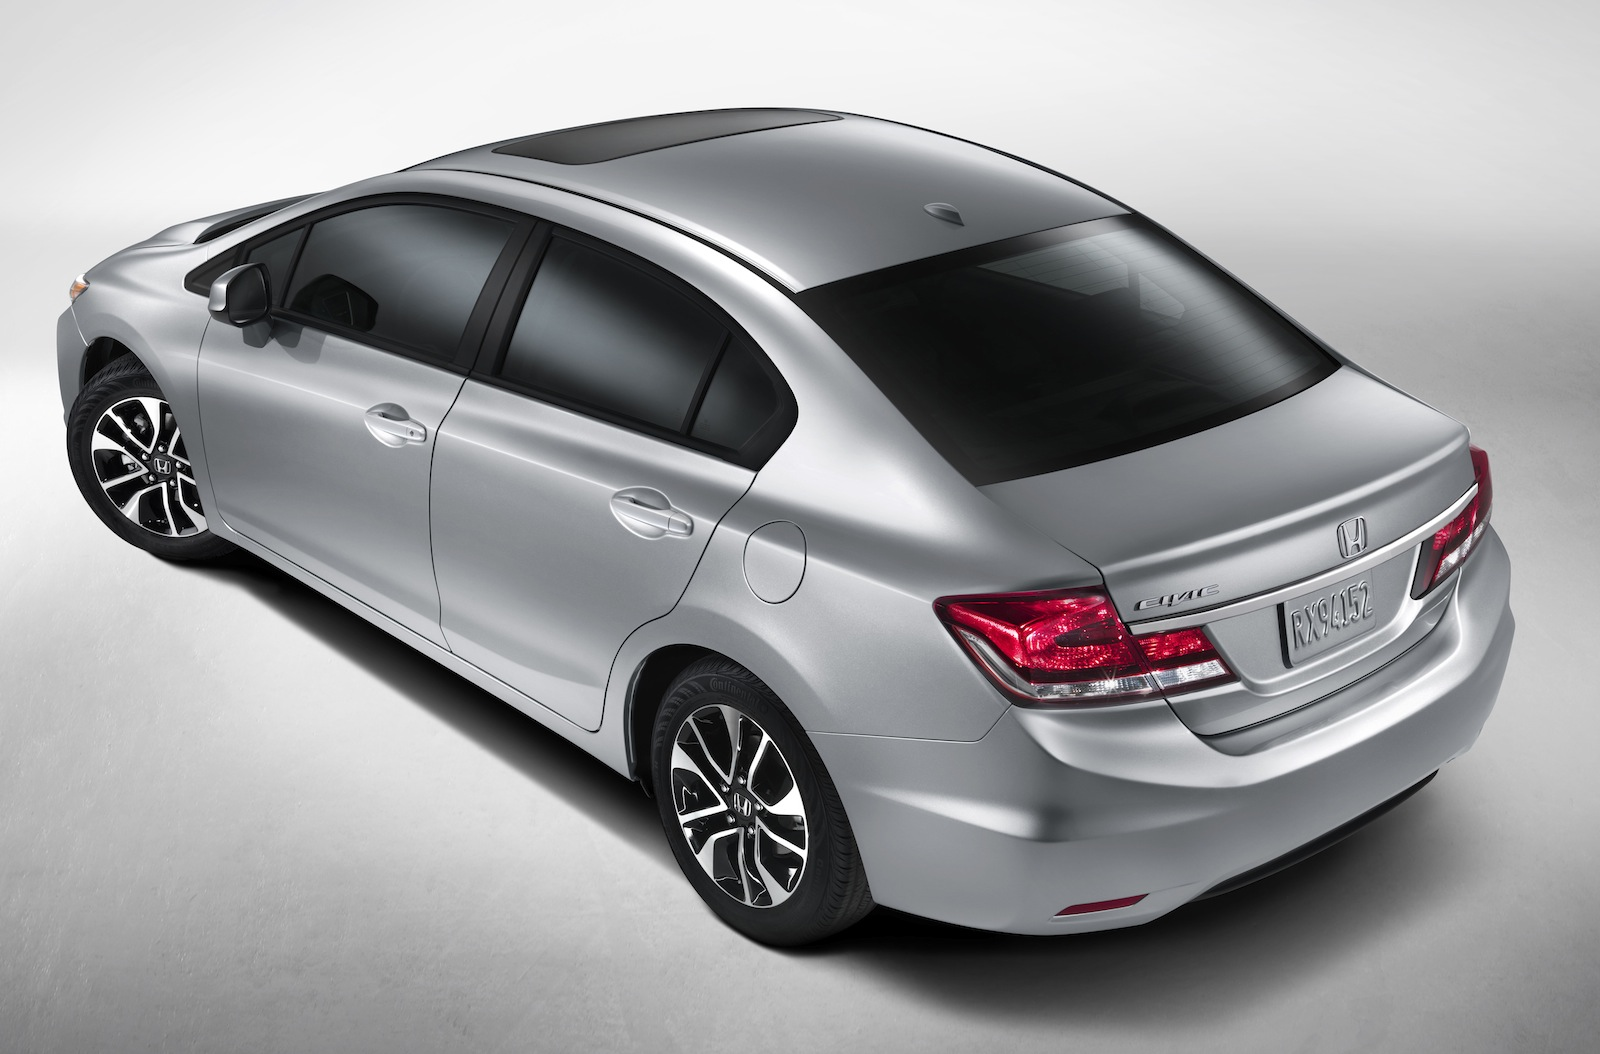 The Honda Civic Sedan Now Gets a Sportier Front end Wallpaper Backgrounds